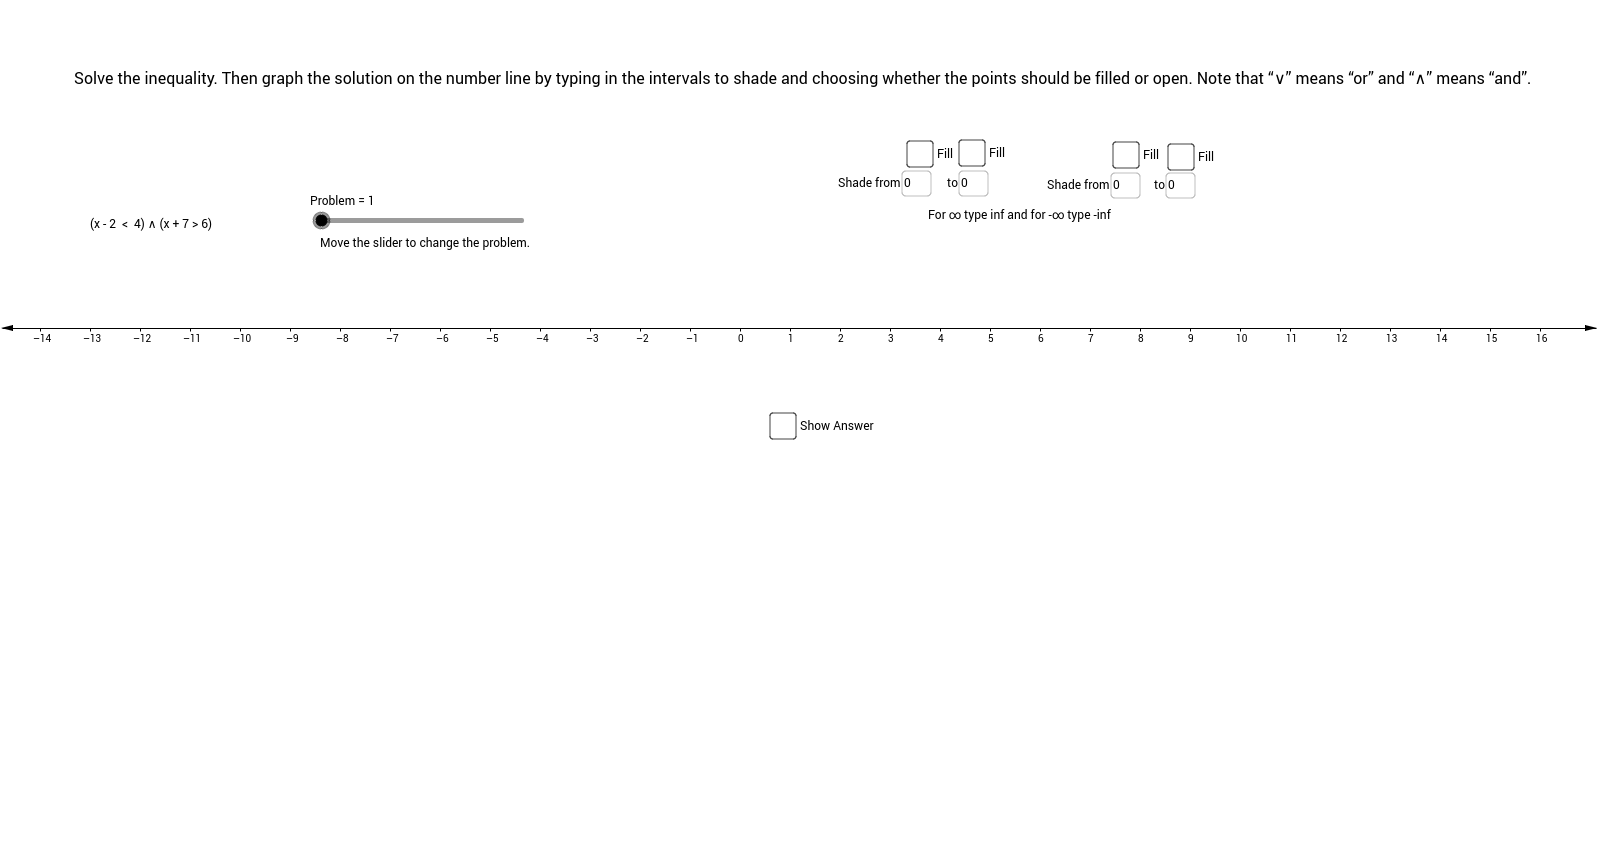 worksheet graphing inequalities on a number line worksheet graphing compound inequalities on number line geogebra view - Graphing Inequalities On A Number Line Worksheet